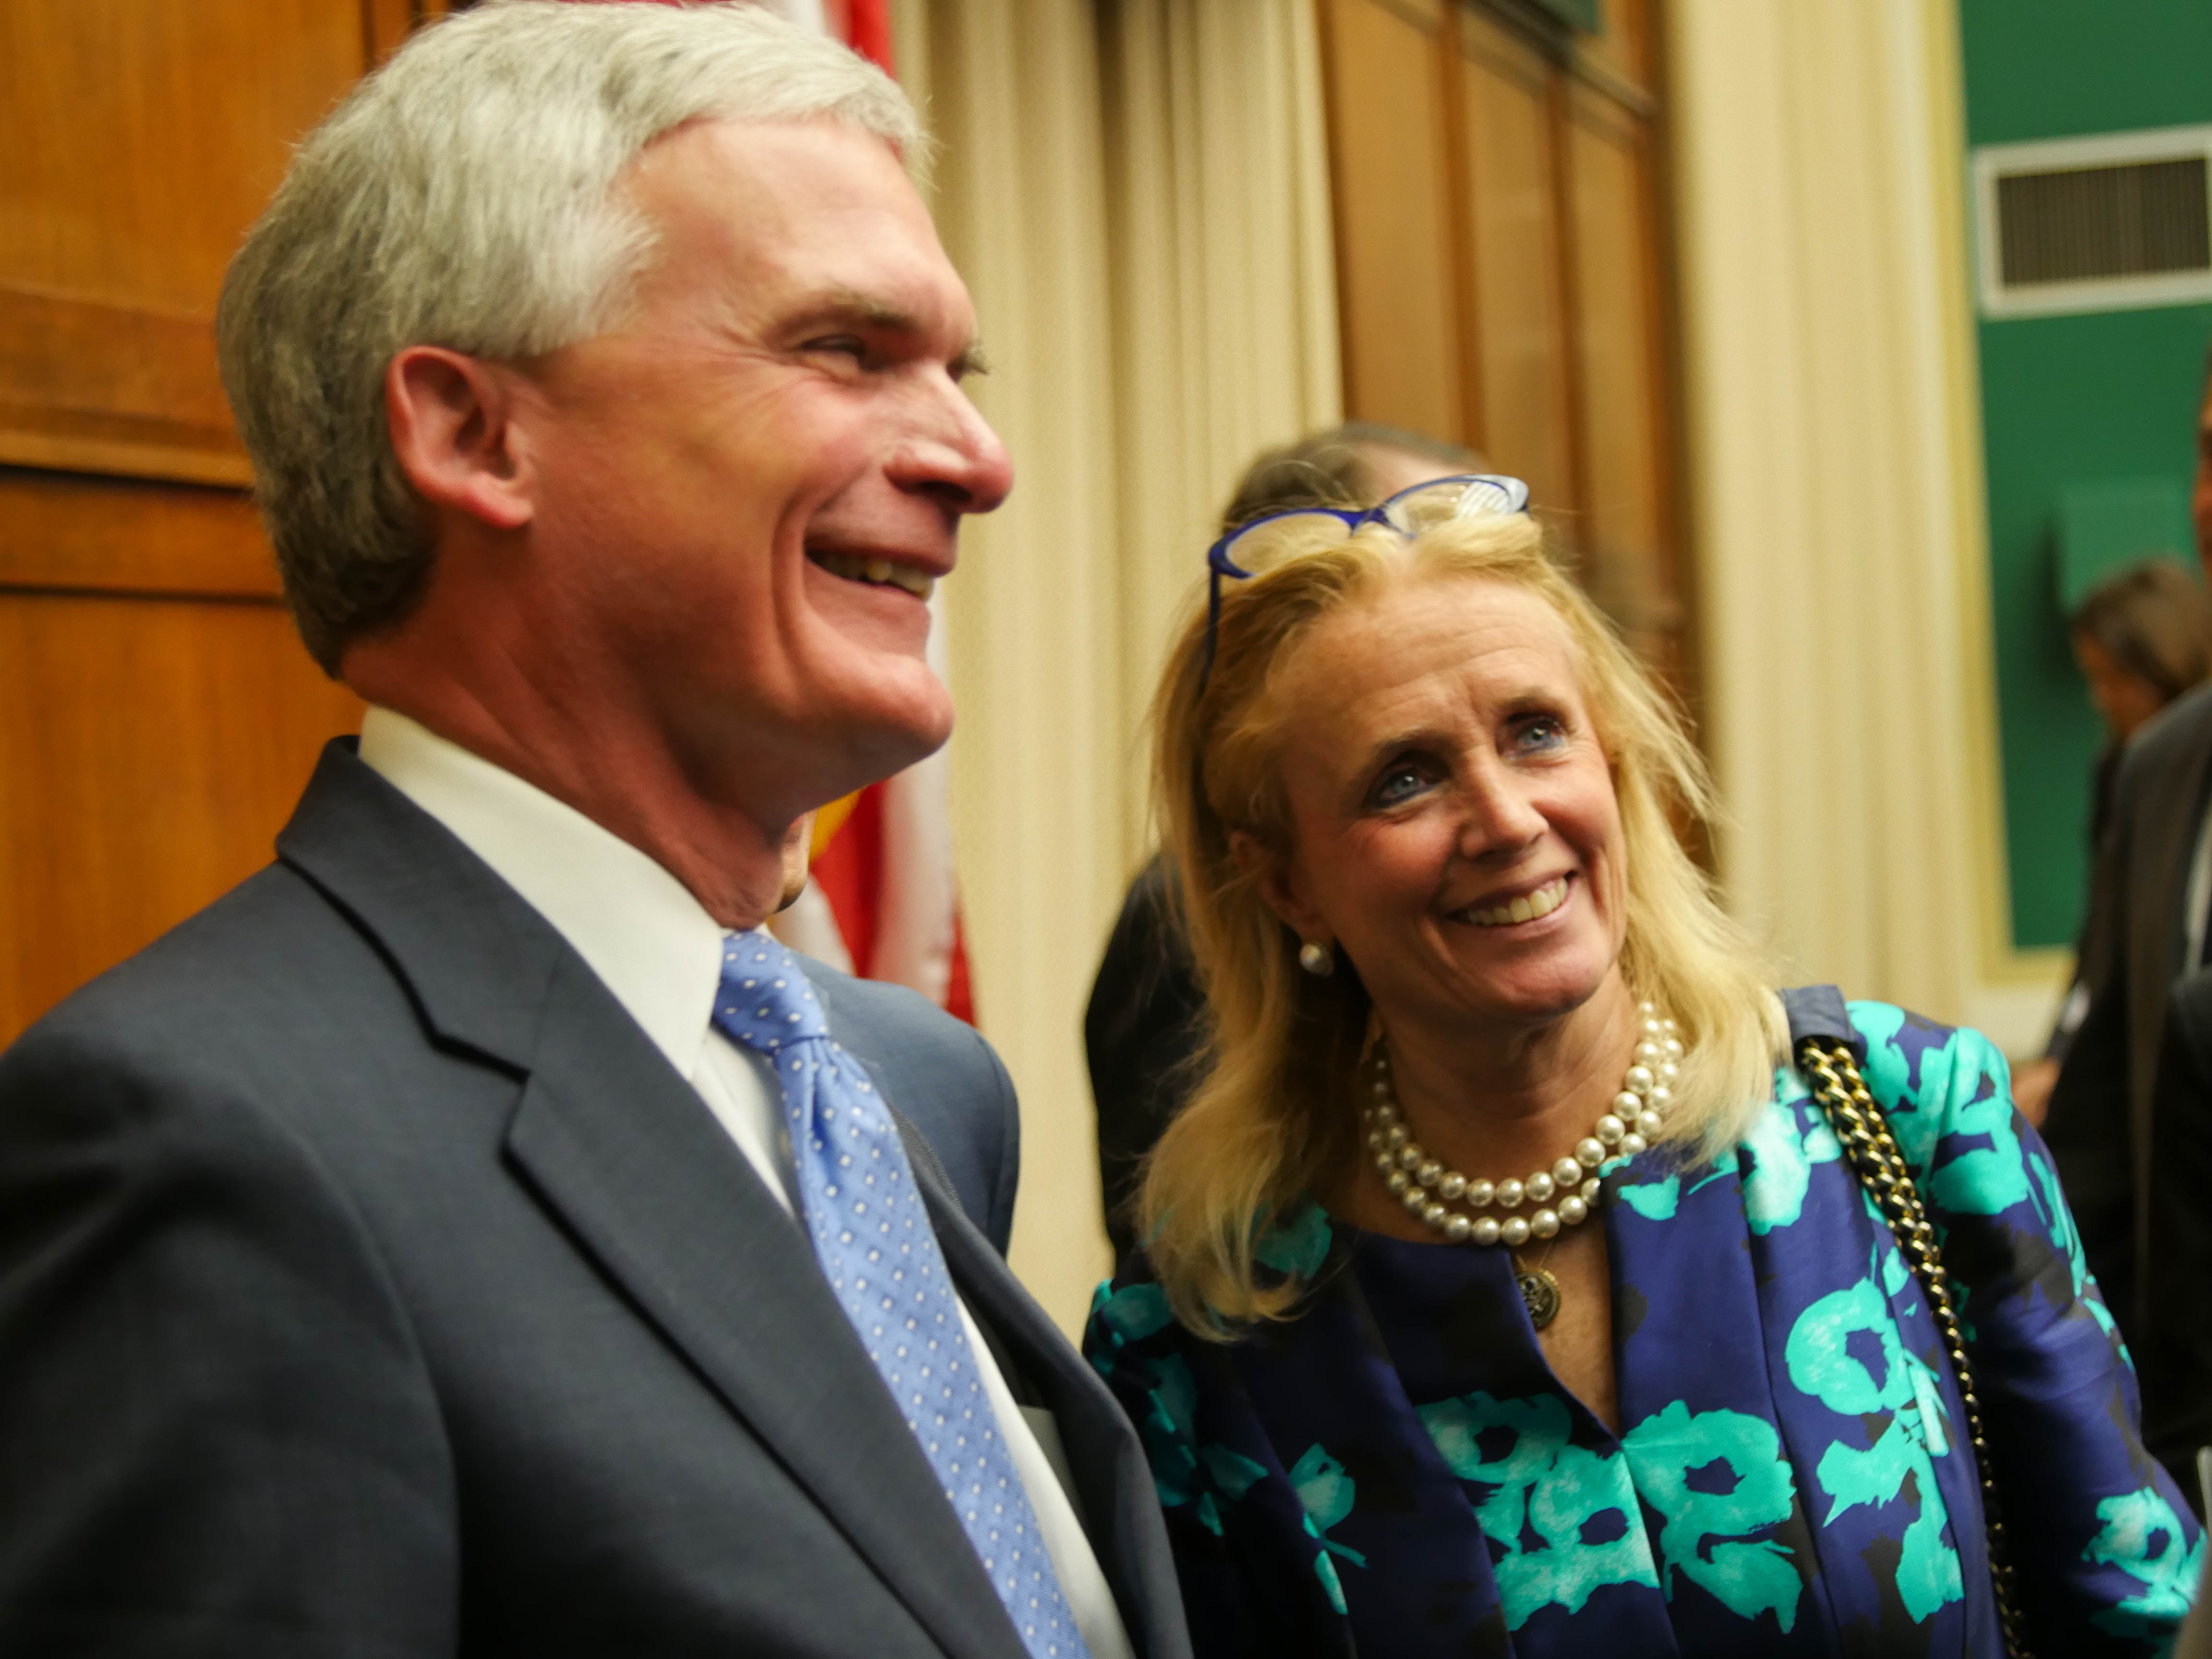 Travel Agency Website >> Following Hearing, Dingell and Latta Commit to Working ...